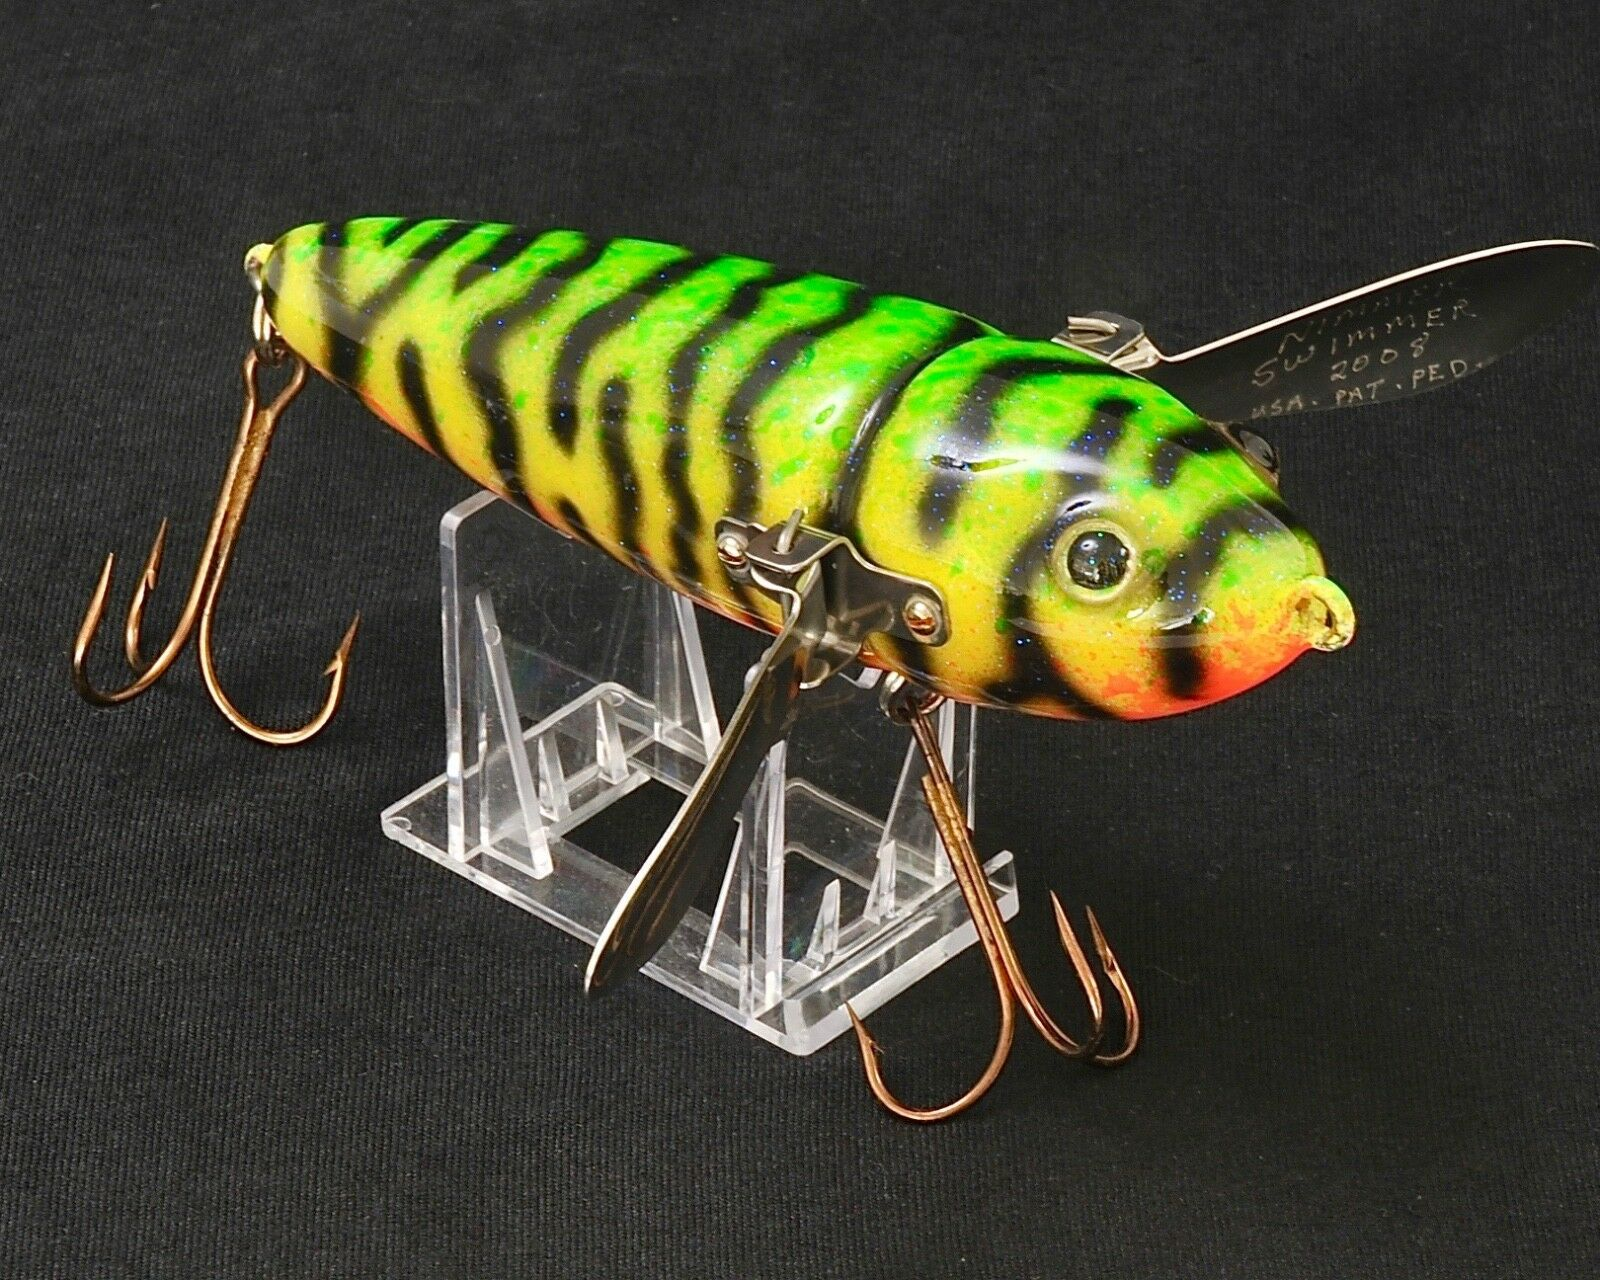 2008 Nimmer Swimmer Lure Bait Patent Pending RARE Never in Water Don't Miss